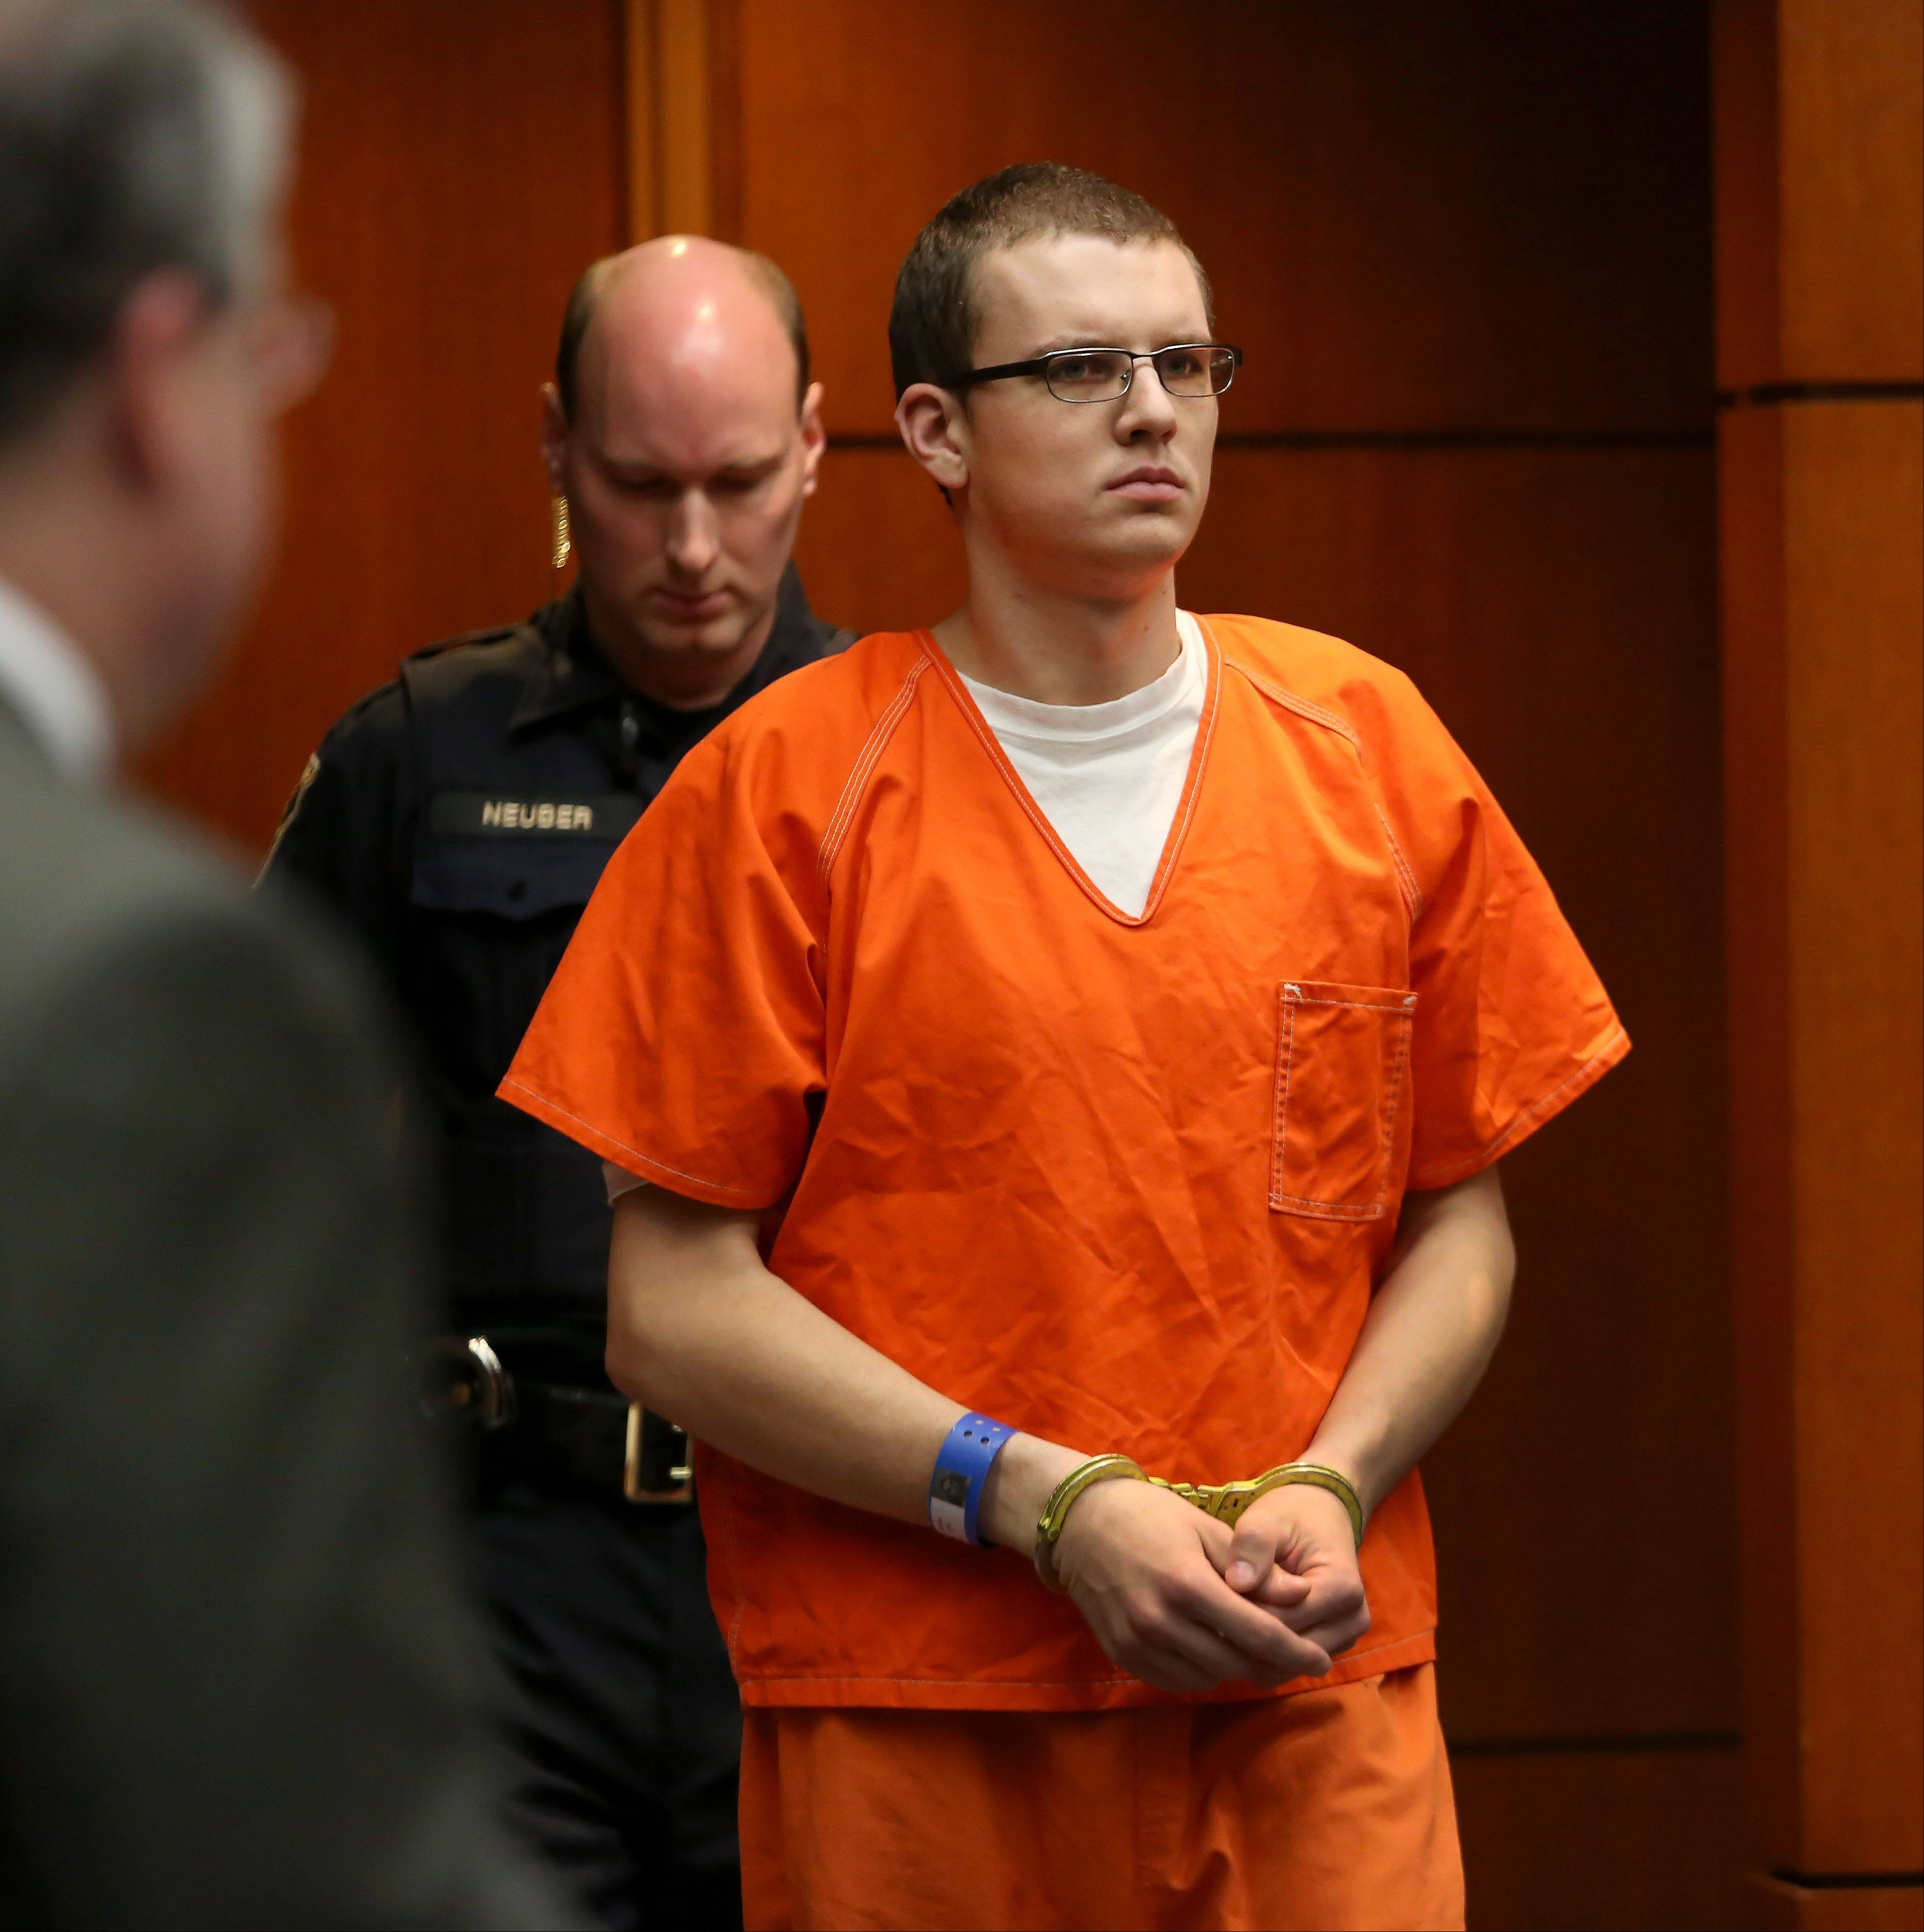 Adam Belmont enters the courtroom Tuesday at the DuPage County courthouse in Wheaton. He pleaded not guilty to first-degree murder and sex assault charges in the Dec. 15 death of his ex-girlfriend, Alyssa Van Meter in her Woodridge apartment. His arraignment is the third in DuPage County to be photographed and video recorded.